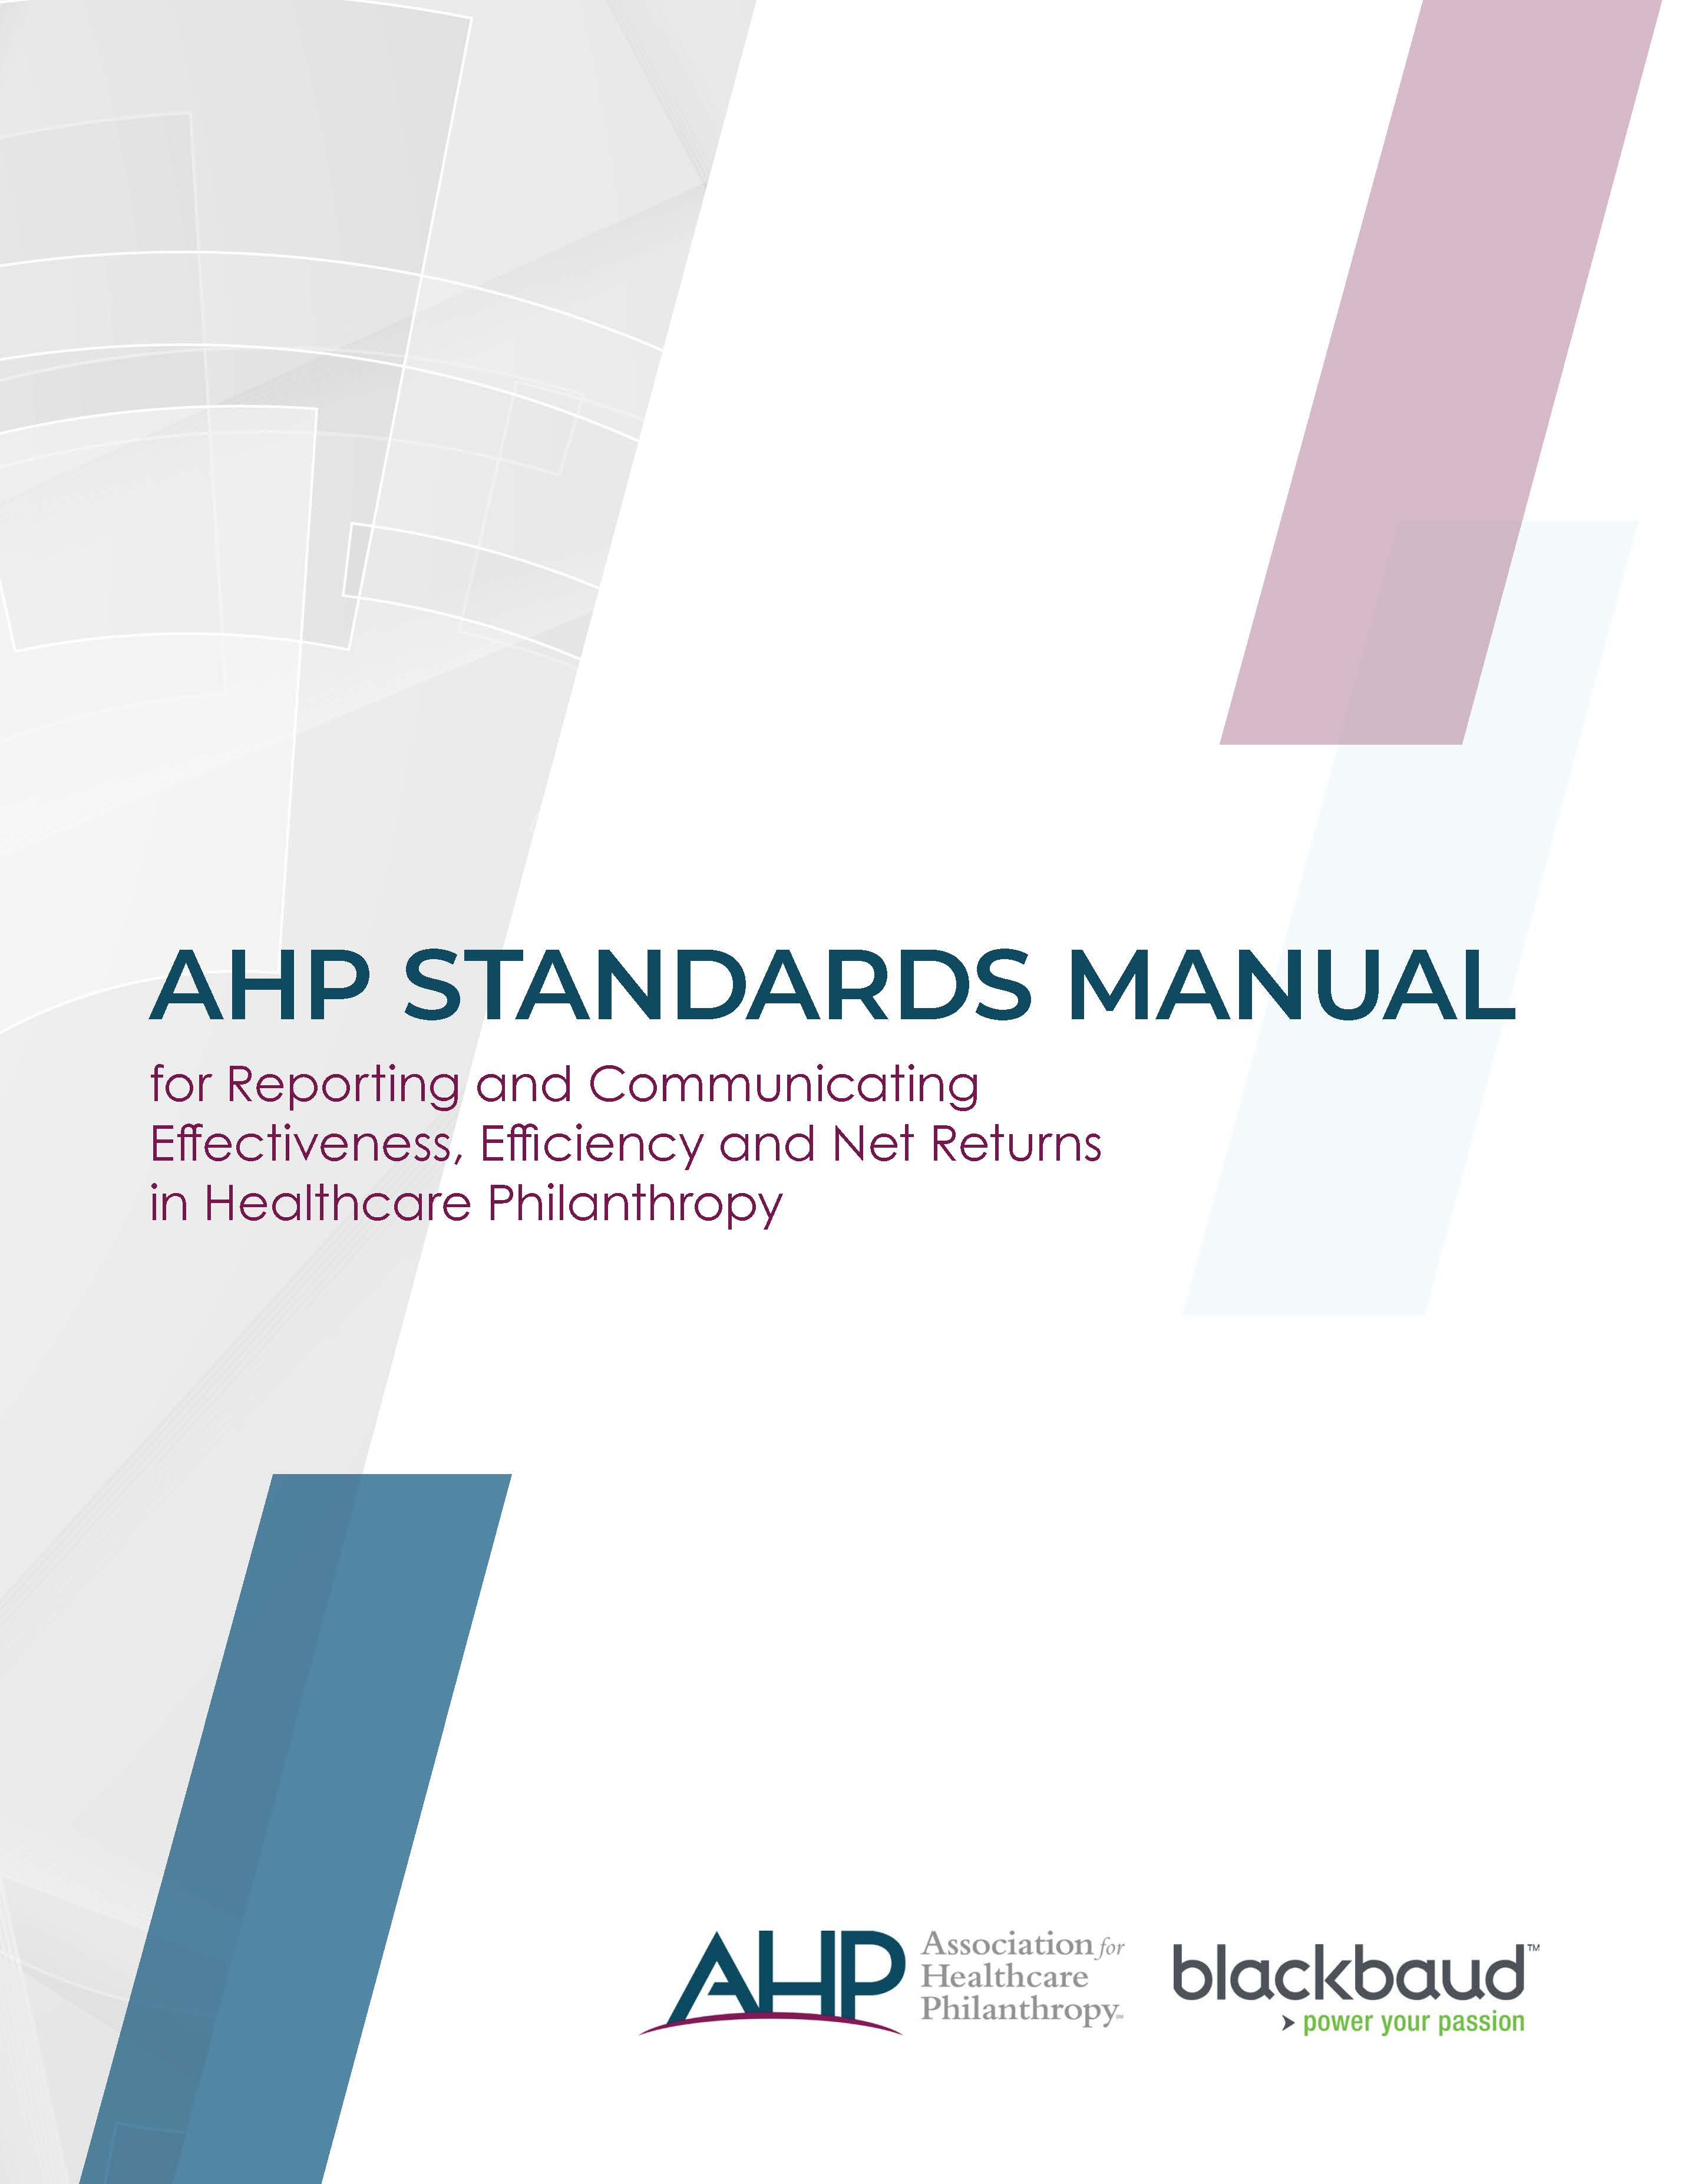 AHP Standards Manual (Digital Version)